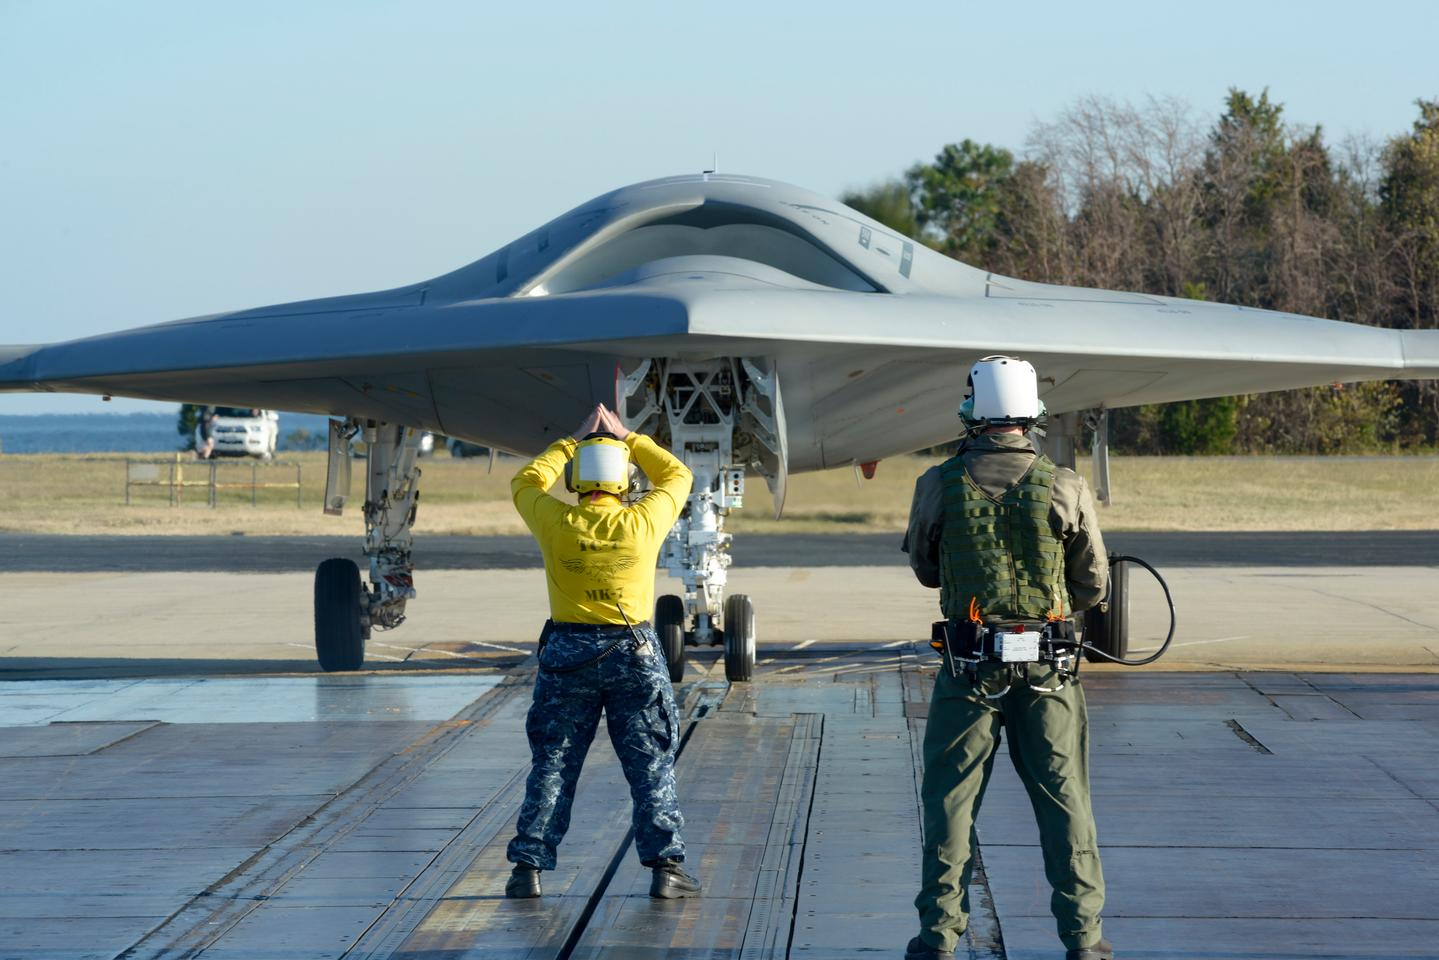 A deck operator using a wireless, handheld Control Display Unit guides the aircraft into position on a shore-based catapult (Photo: Northrop Grumman)